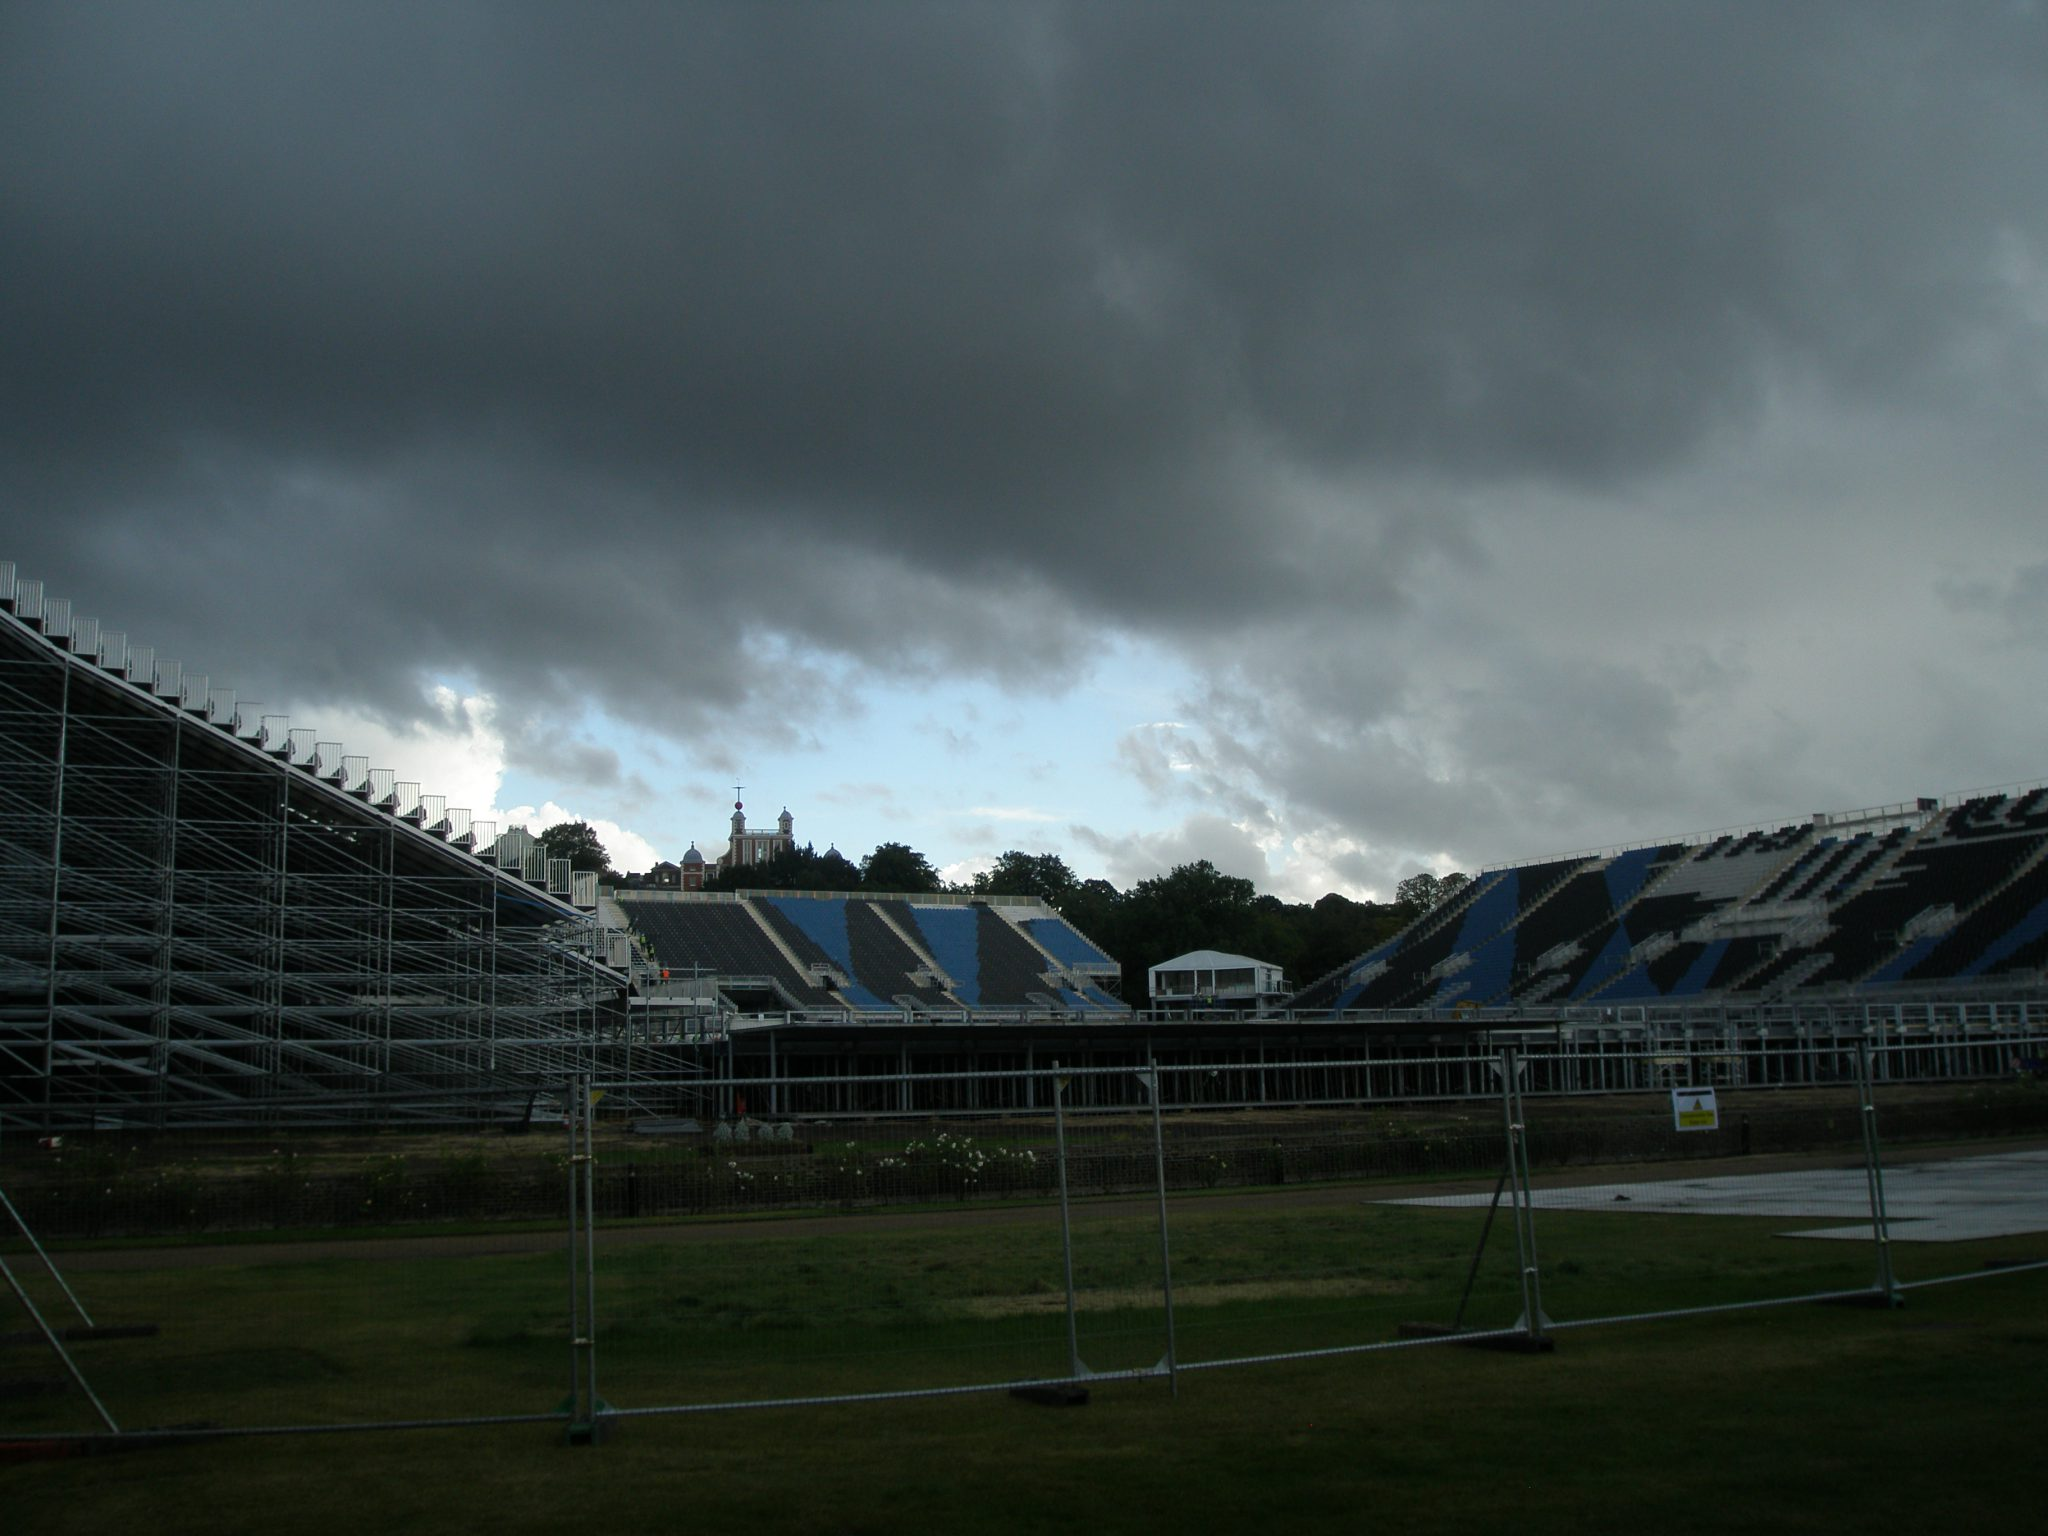 Temporary Grandstands, with the Royal Observatory on the crest of the hill, in the distance